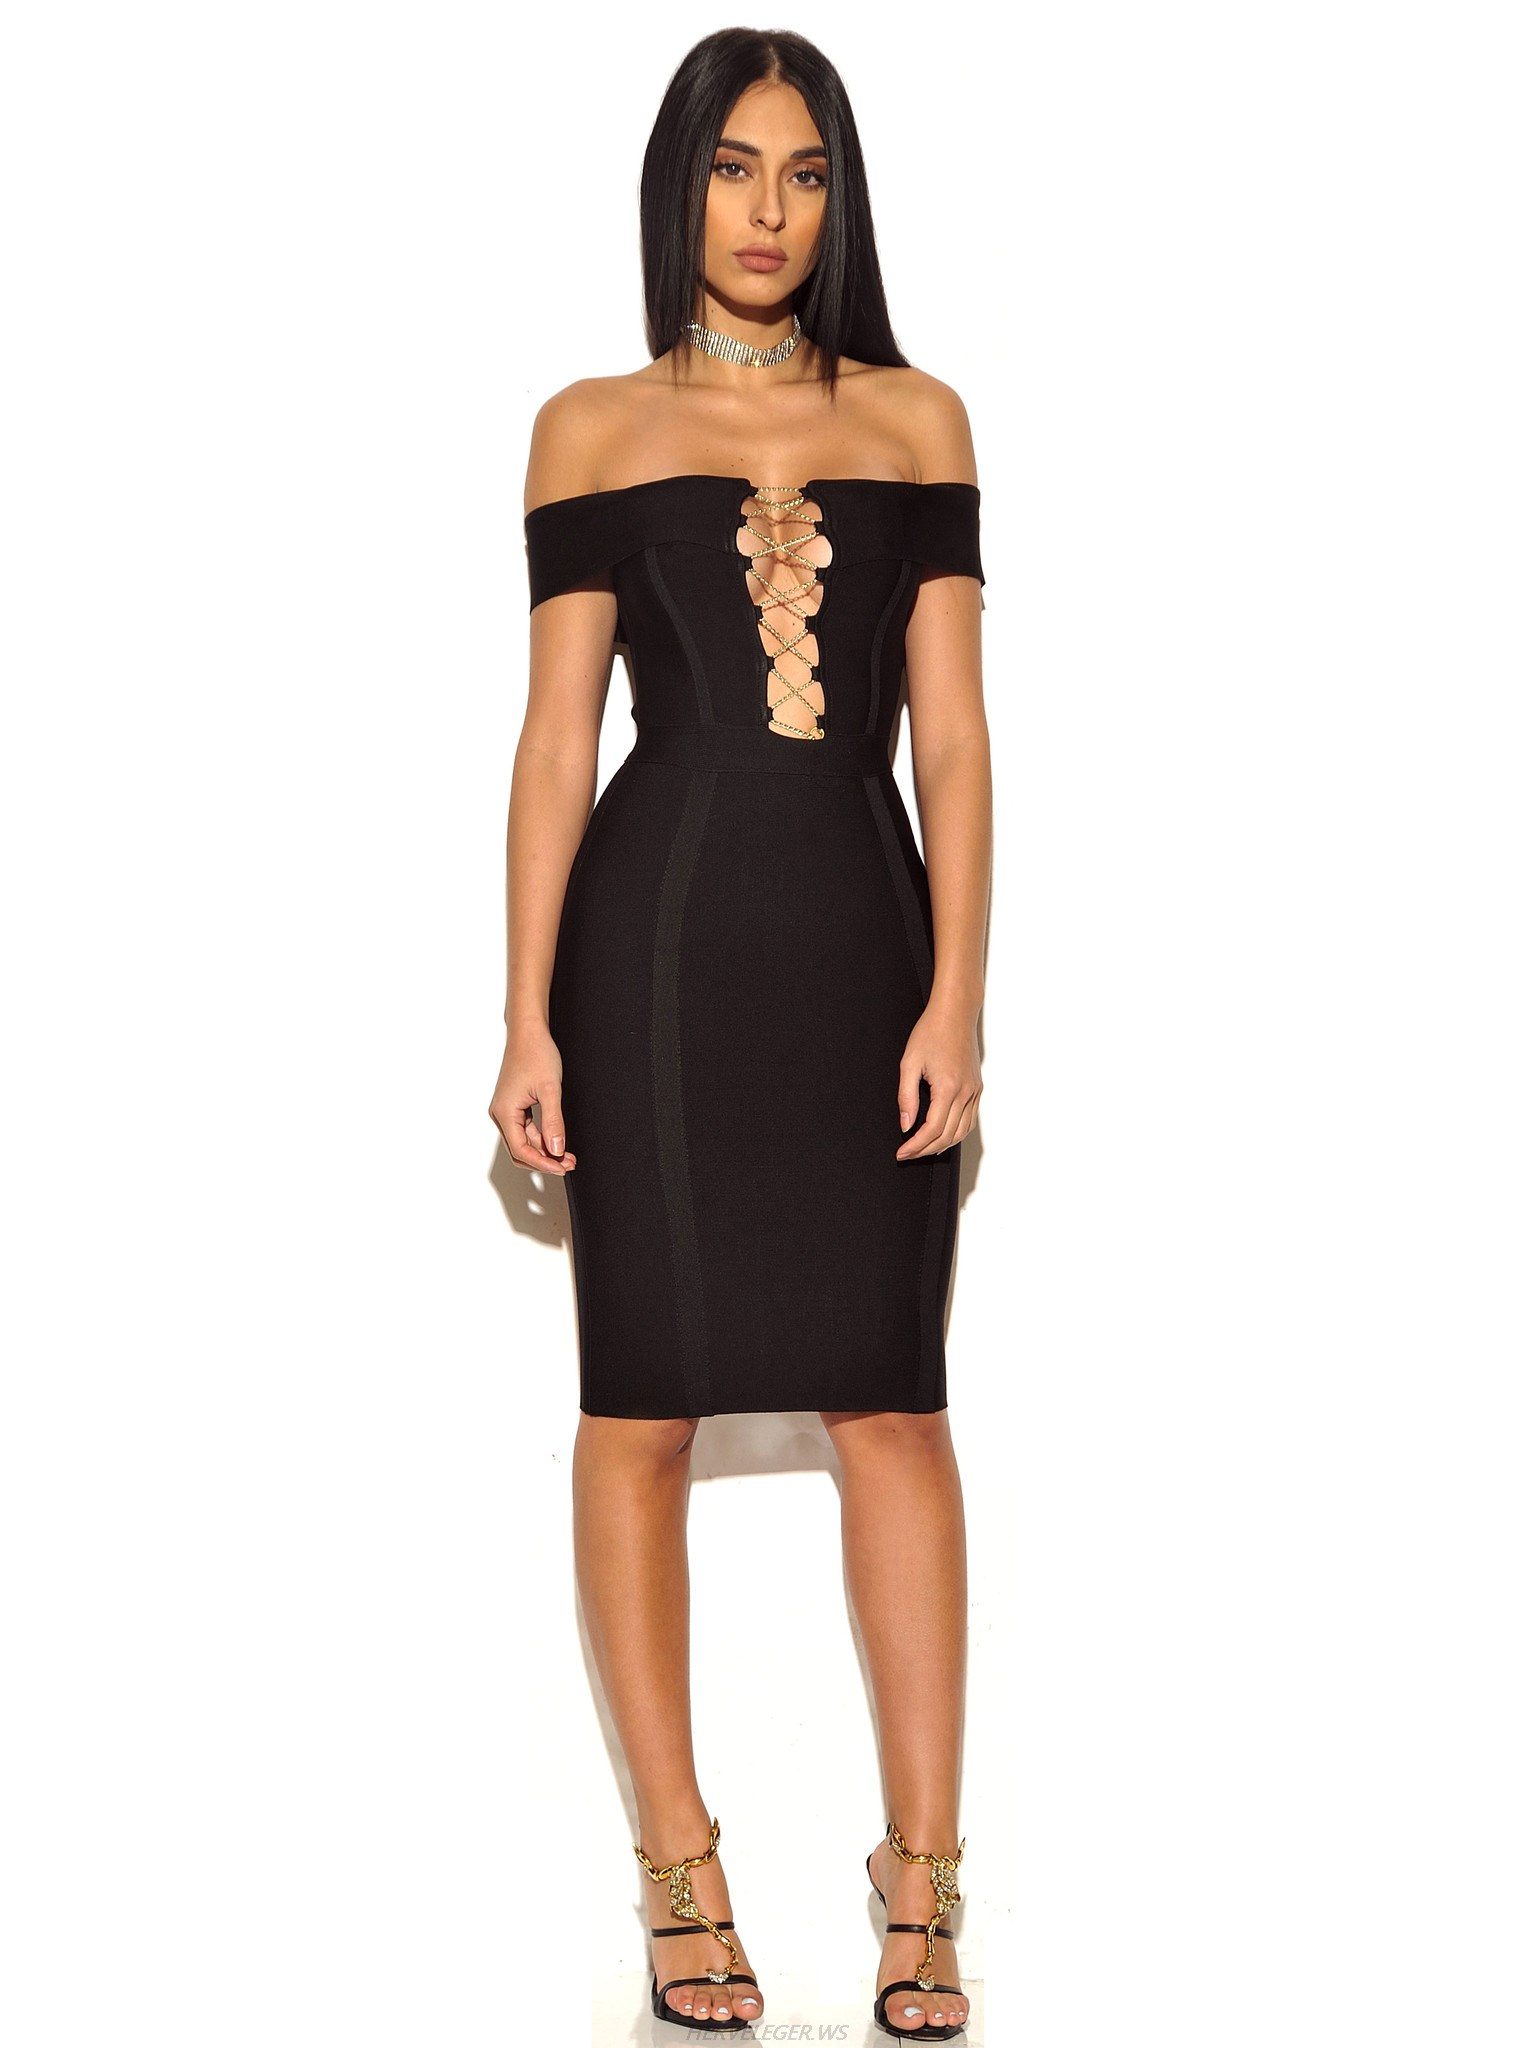 Herve Leger Black Strapless Off Shoulder Dress